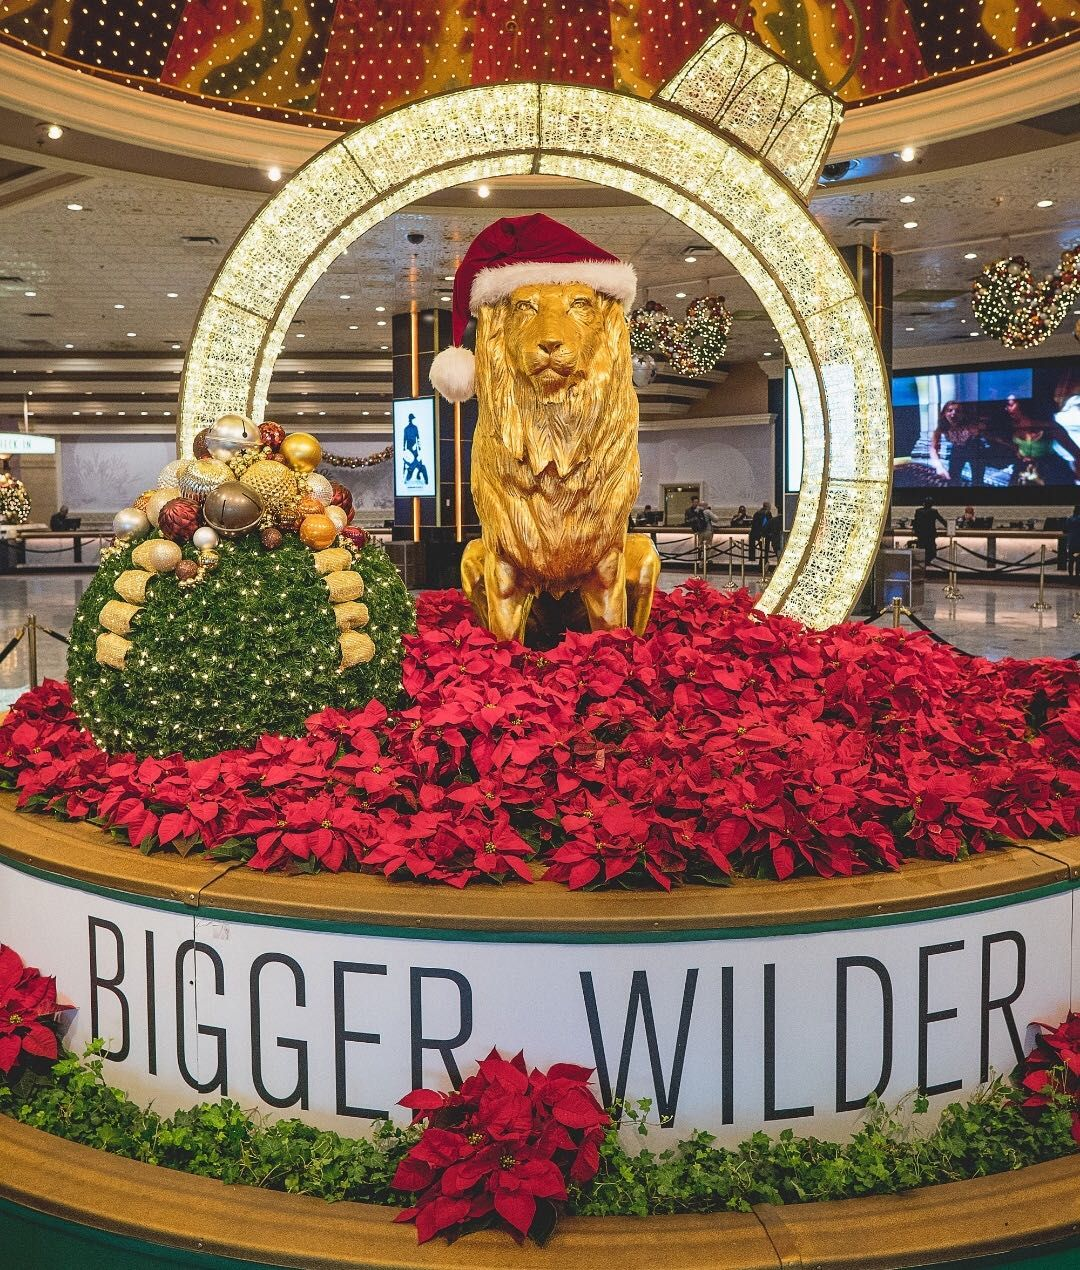 Christmas In Las Vegas Would Not Be Complete Without Mgm Grand S Leo Dressed Up For The Season Winter In La Las Vegas Hotels Vegas Hotel Mgm Grand Las Vegas